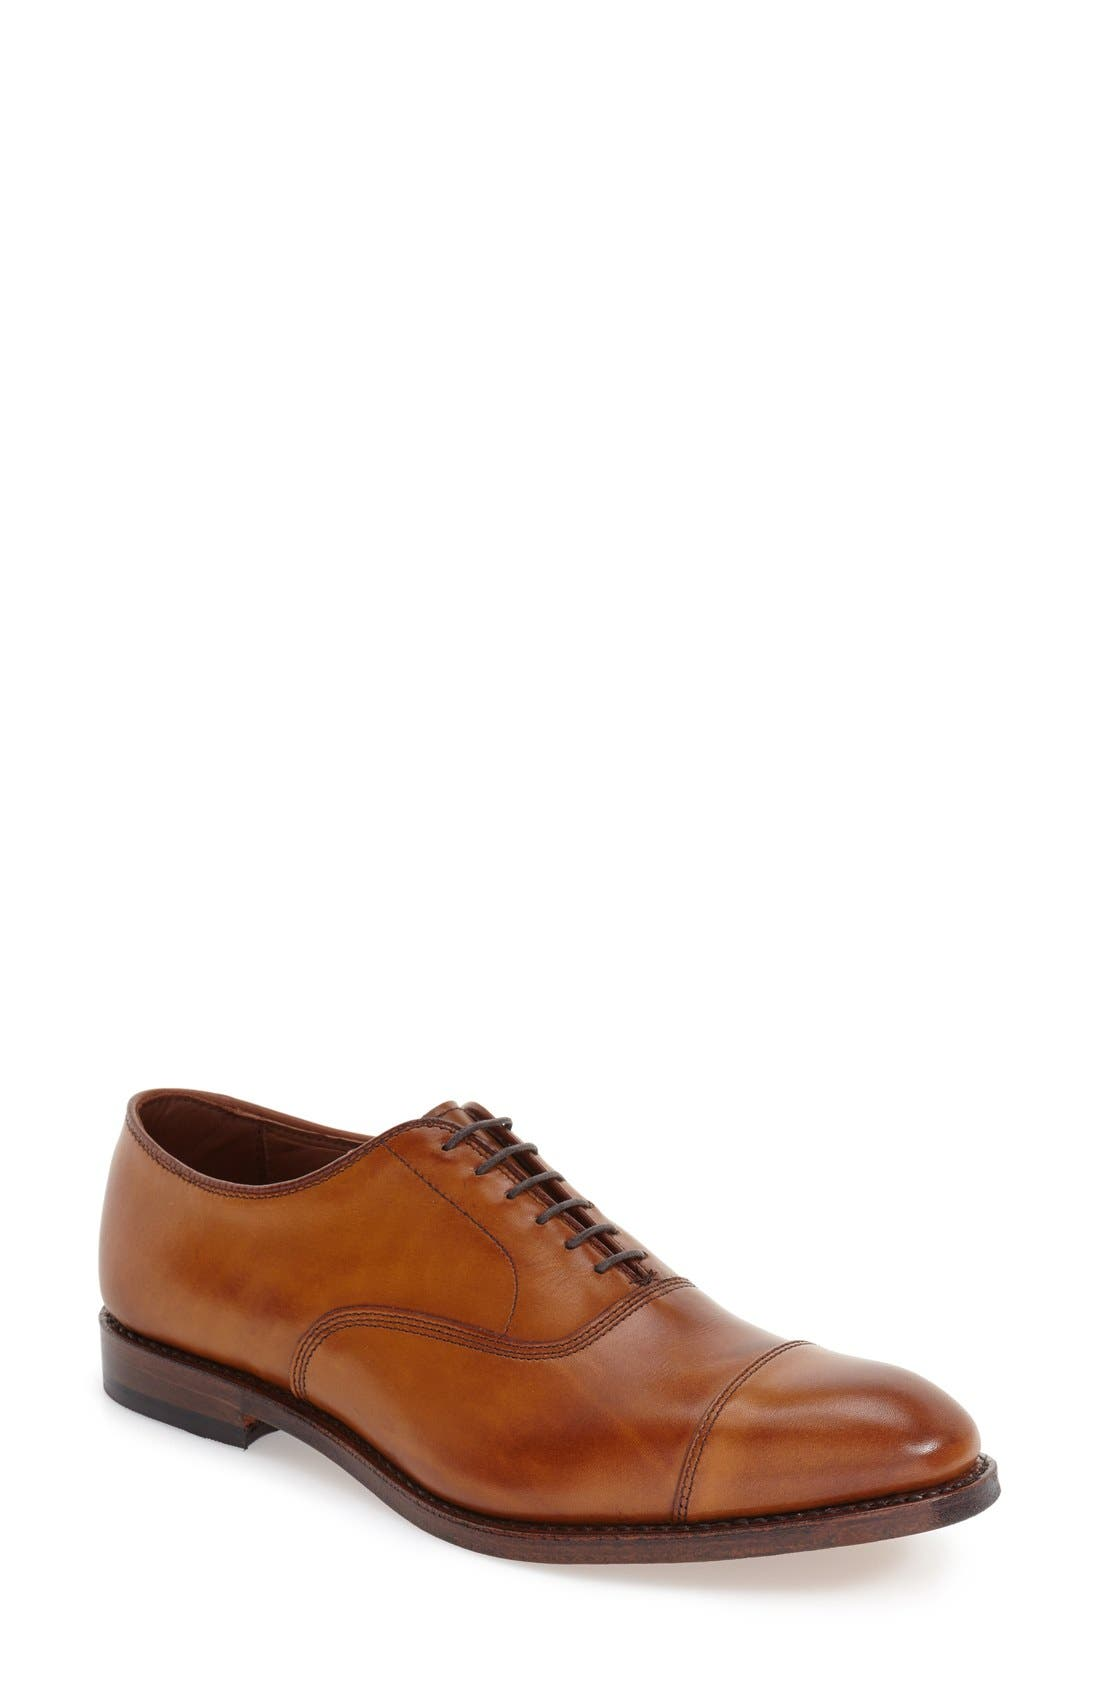 Allen Edmonds 'Park Avenue' Cap Toe Oxford (Men)